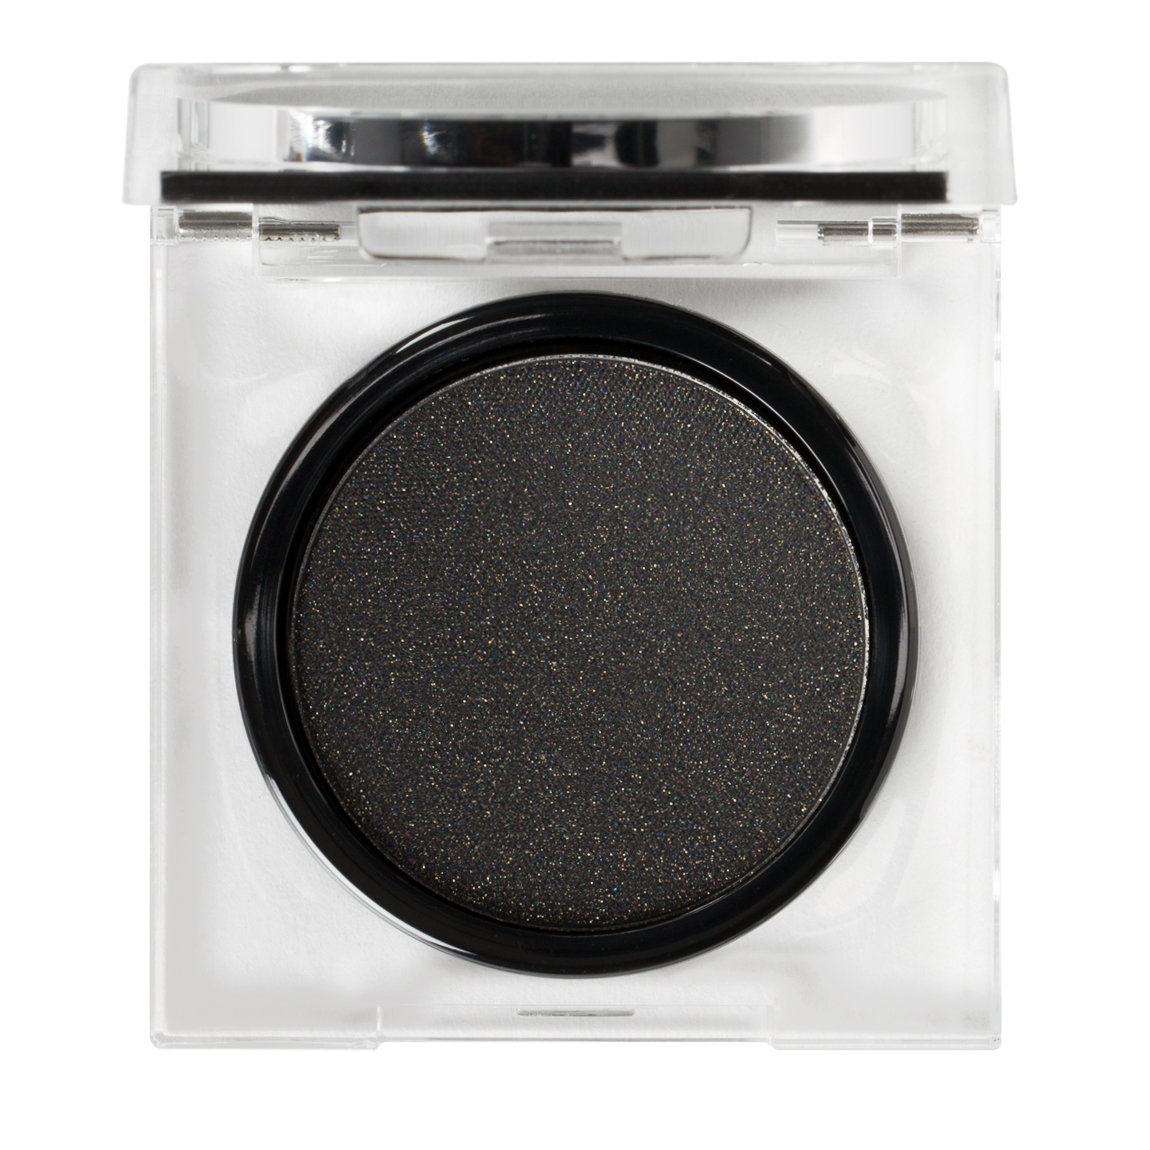 Natasha Denona Blackest Black Eyeshadow Gold Rush product smear.